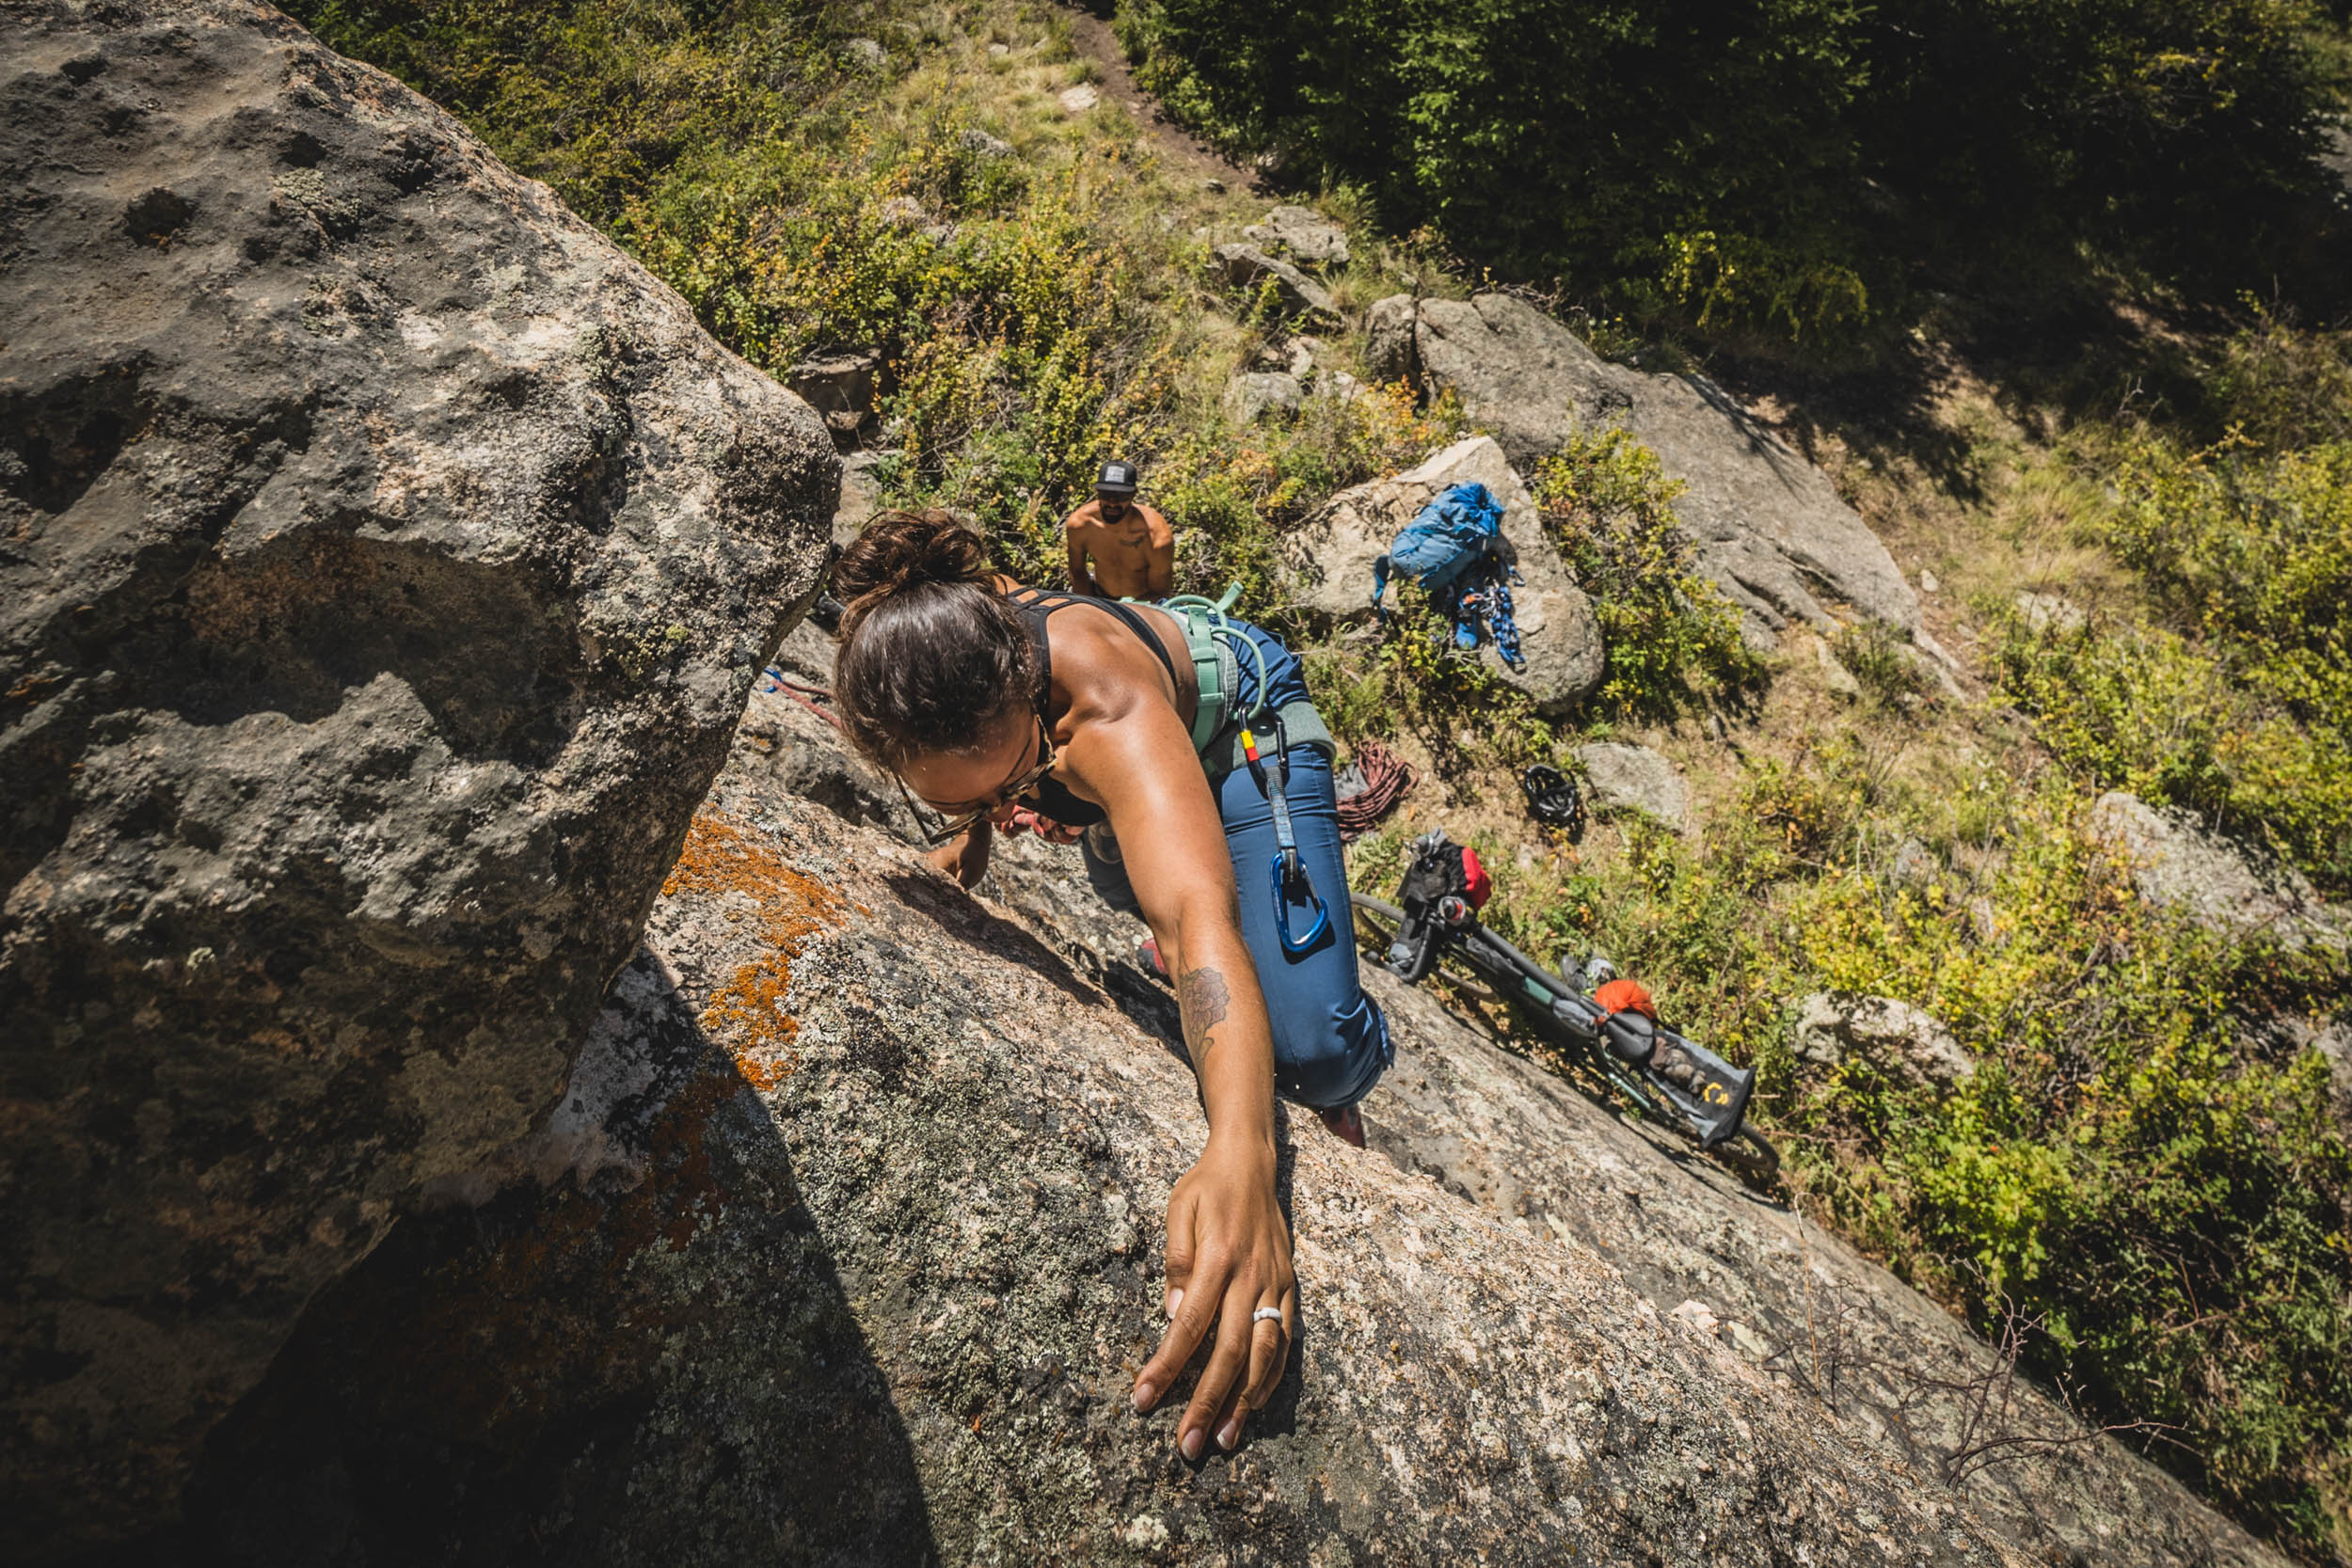 view from above of Rachel Olzer sport climbing on granite